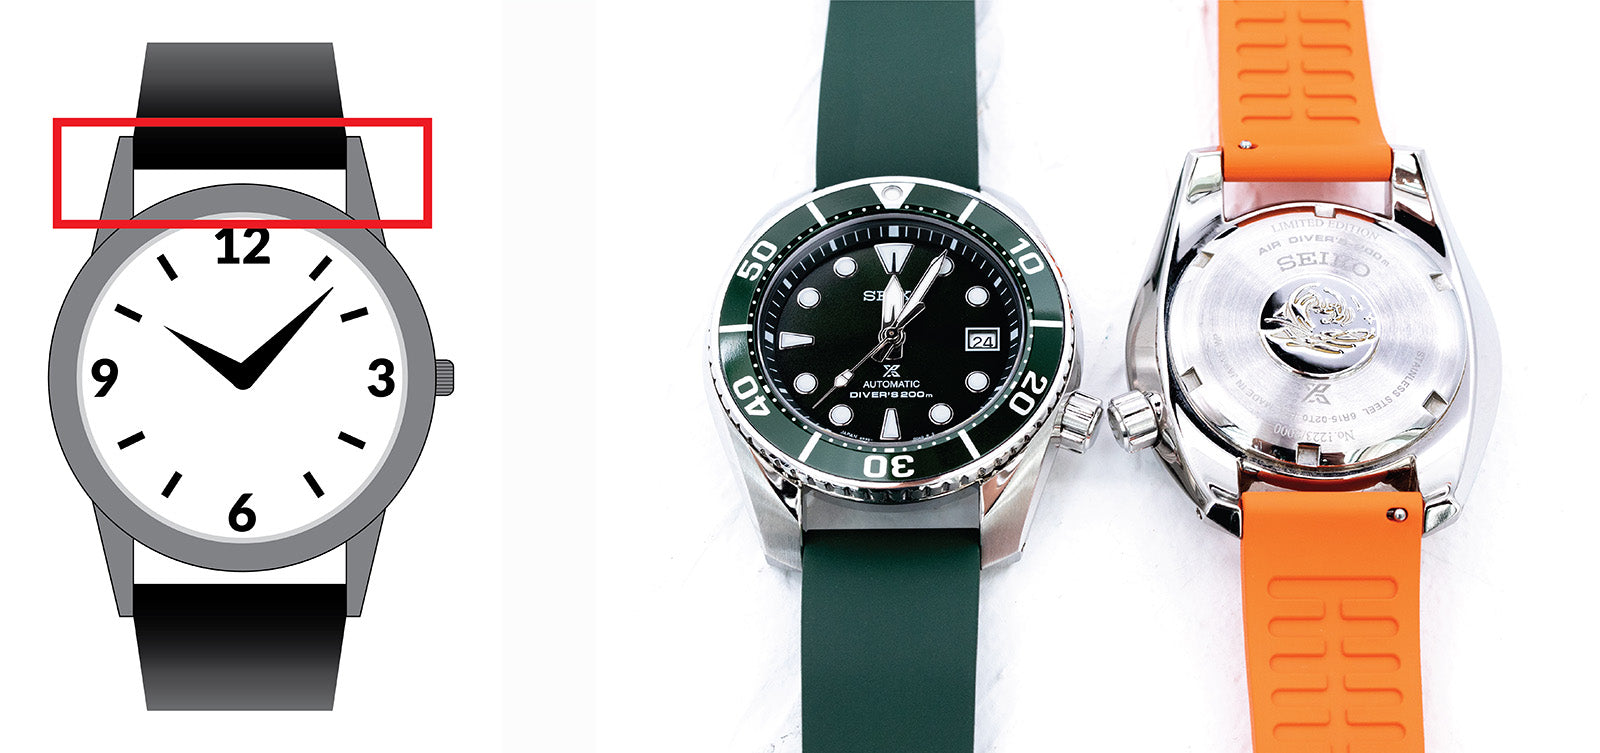 Watch hidden lug compared with Seiko Sumo open lug